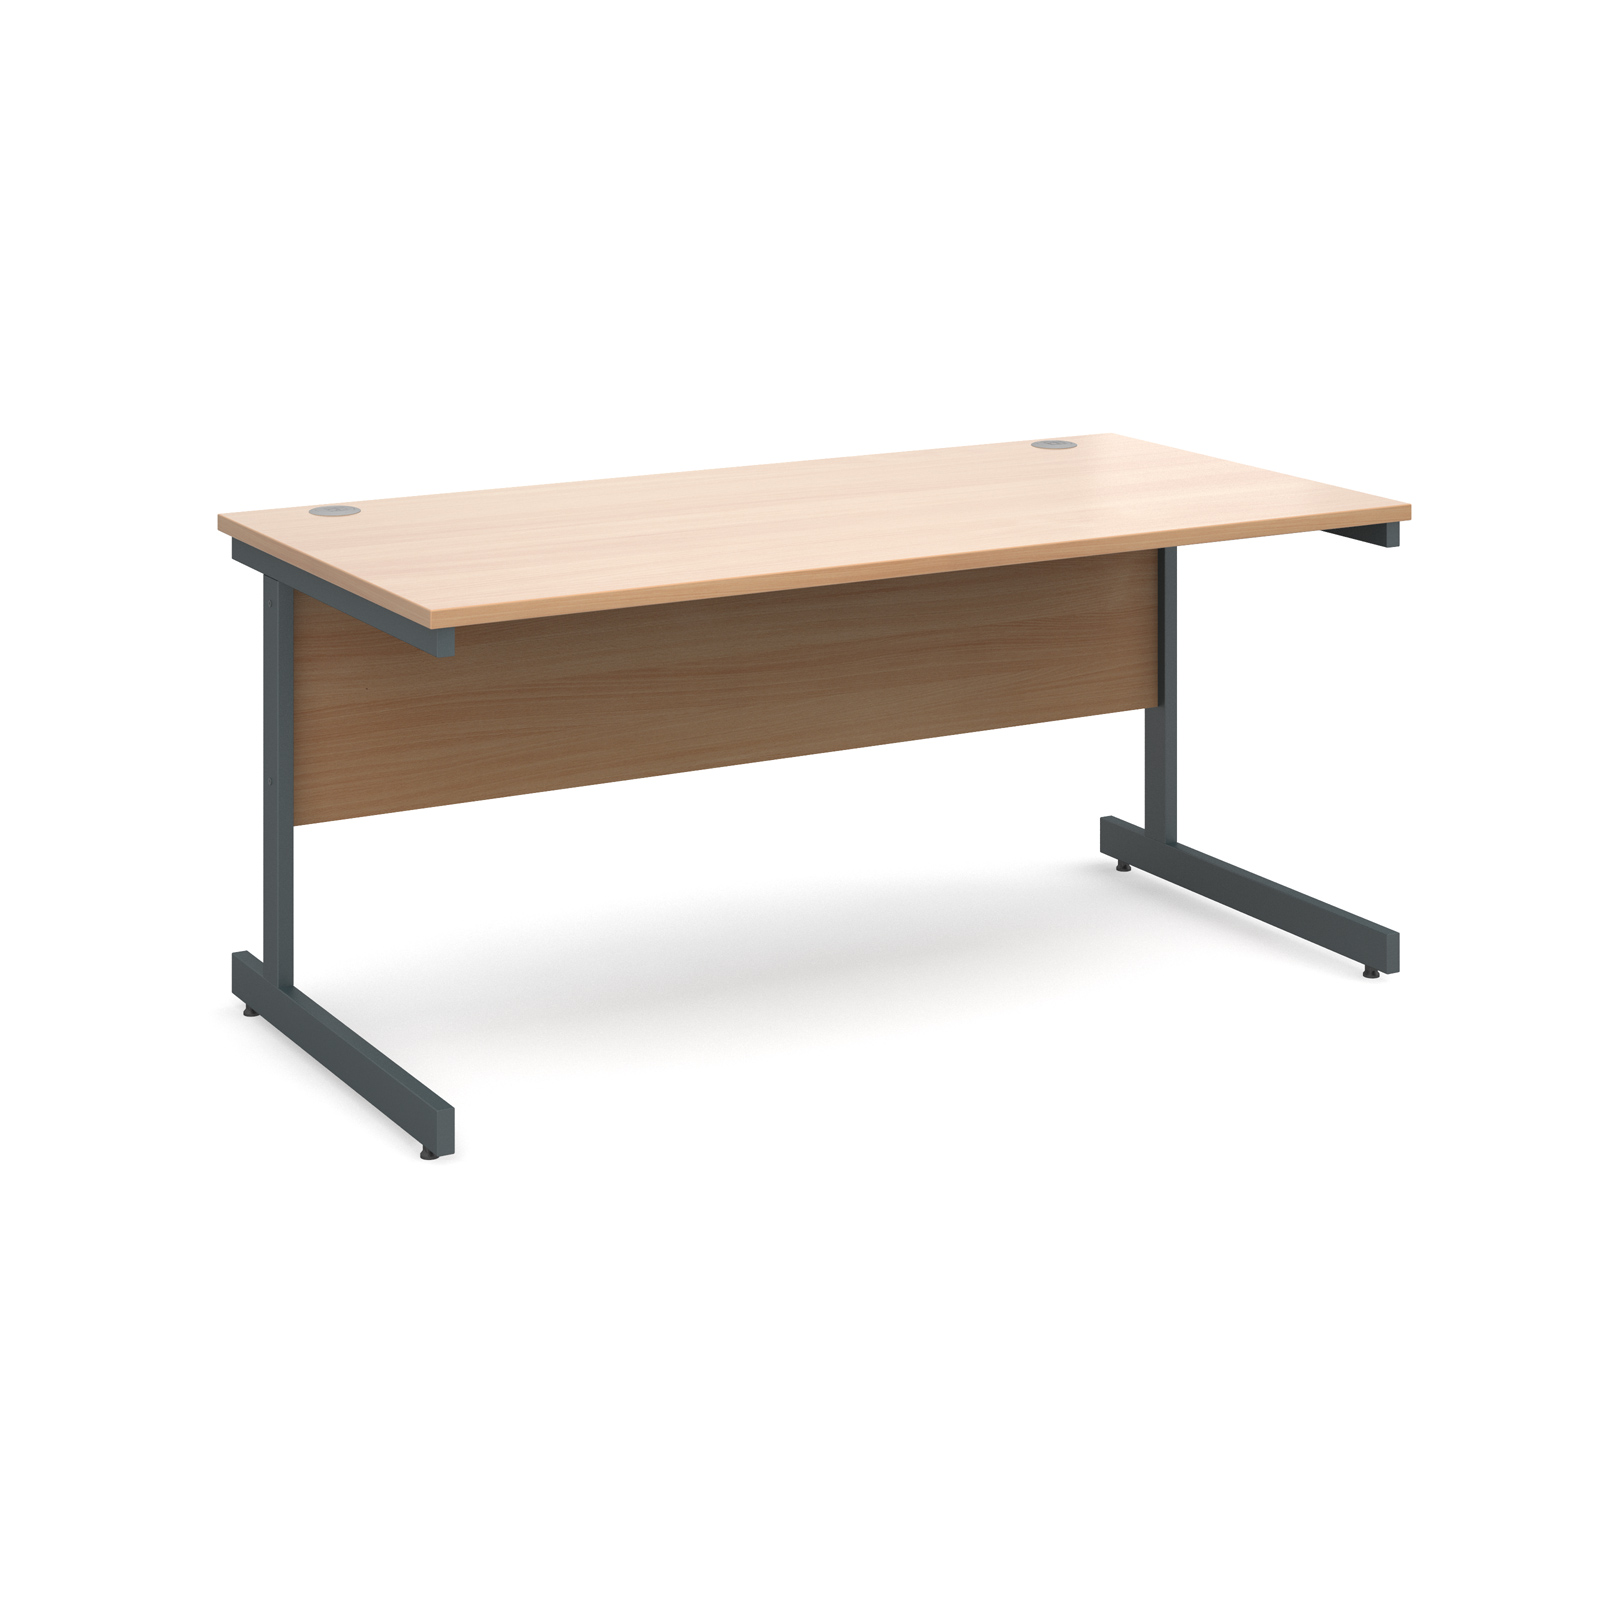 Contract 25 straight desk 1600mm x 800mm - graphite cantilever frame, beech top